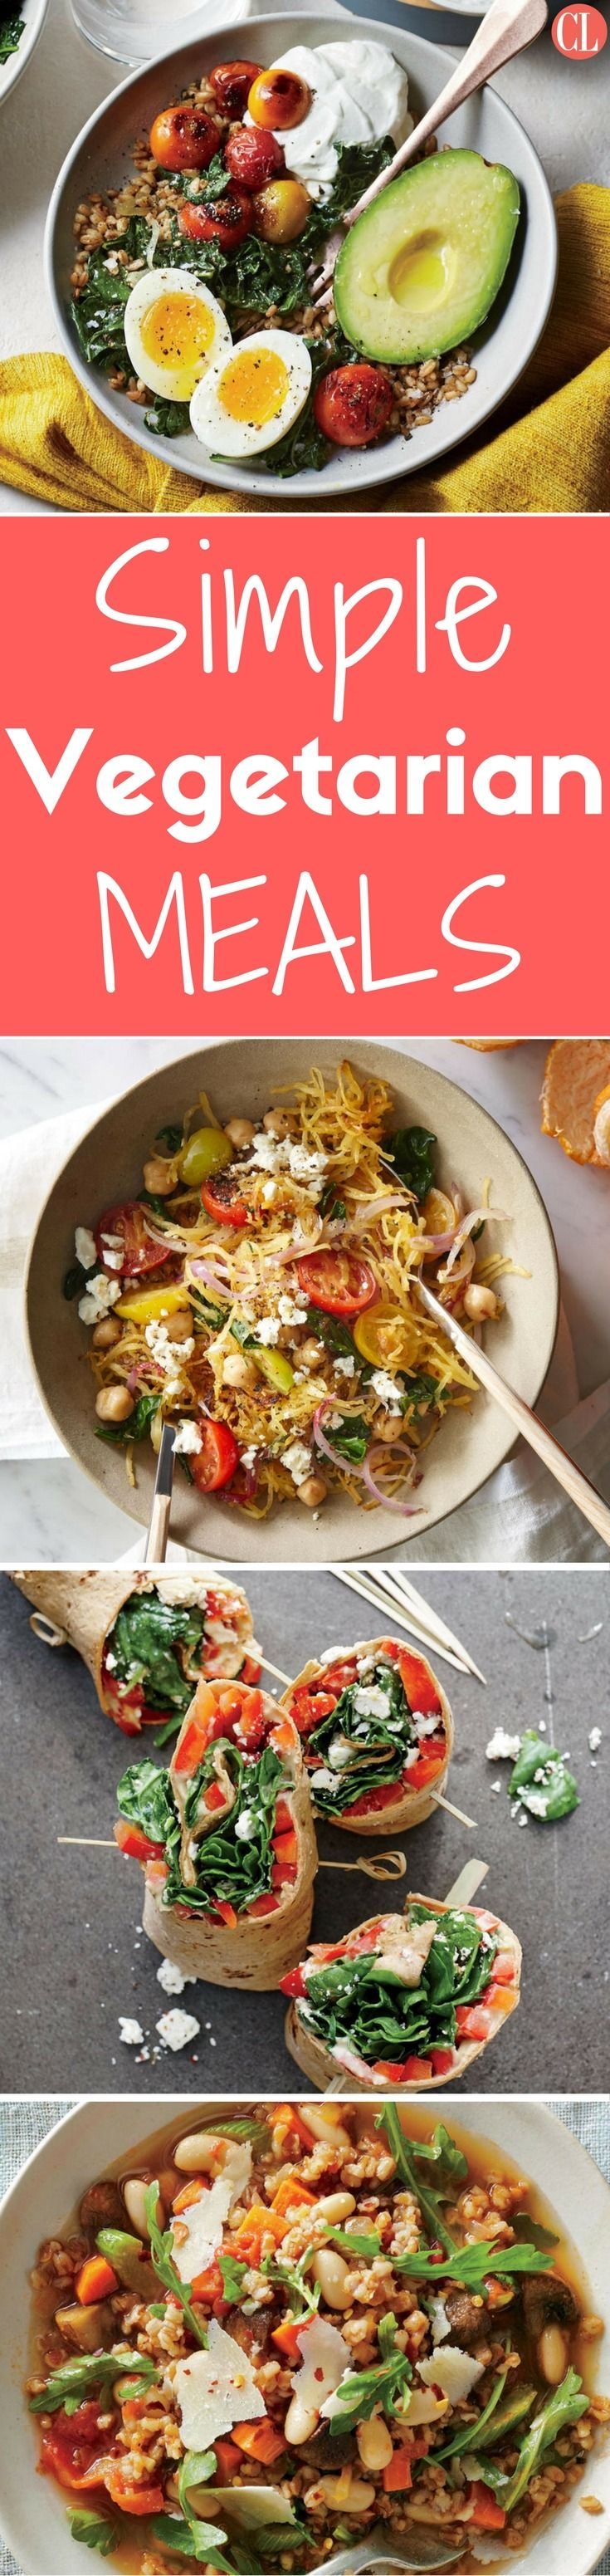 564 best vegetarian recipes images on pinterest clean eating 33 simple vegetarian recipes forumfinder Images